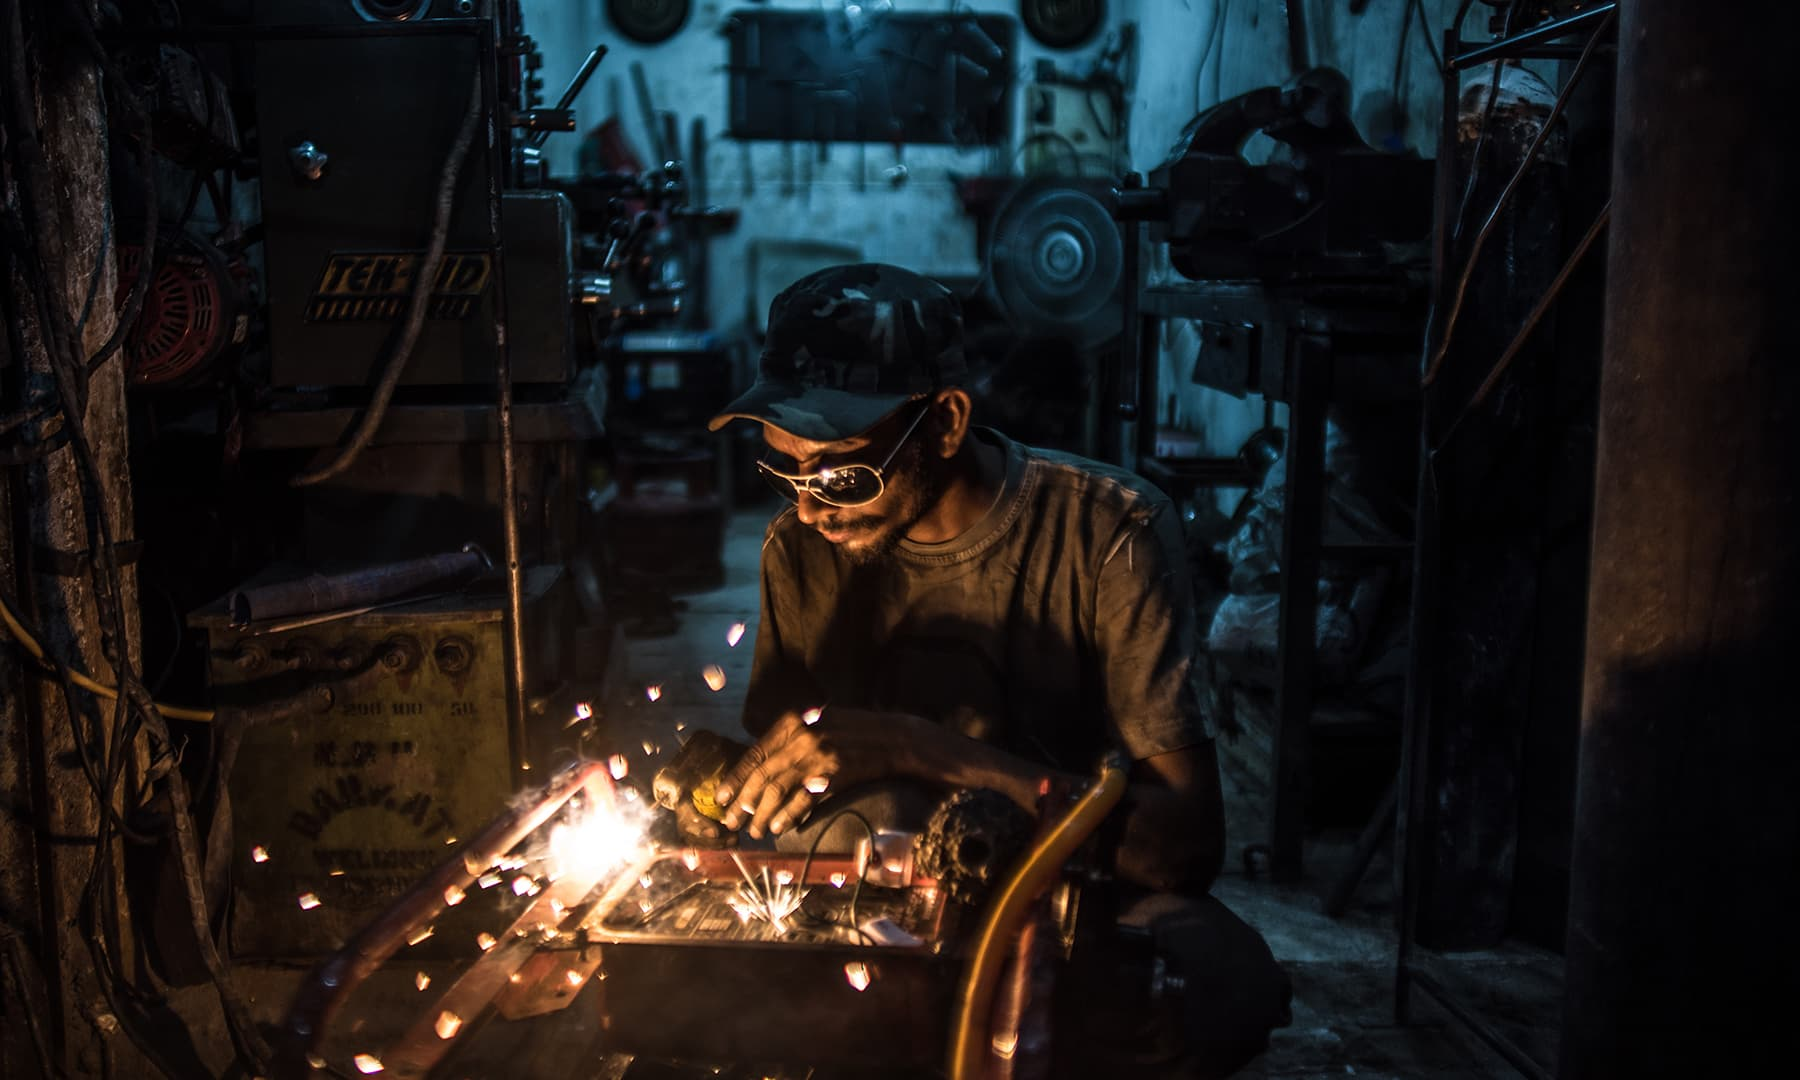 A mechanic's apprentice at work in a shop near UP Morr, Karachi